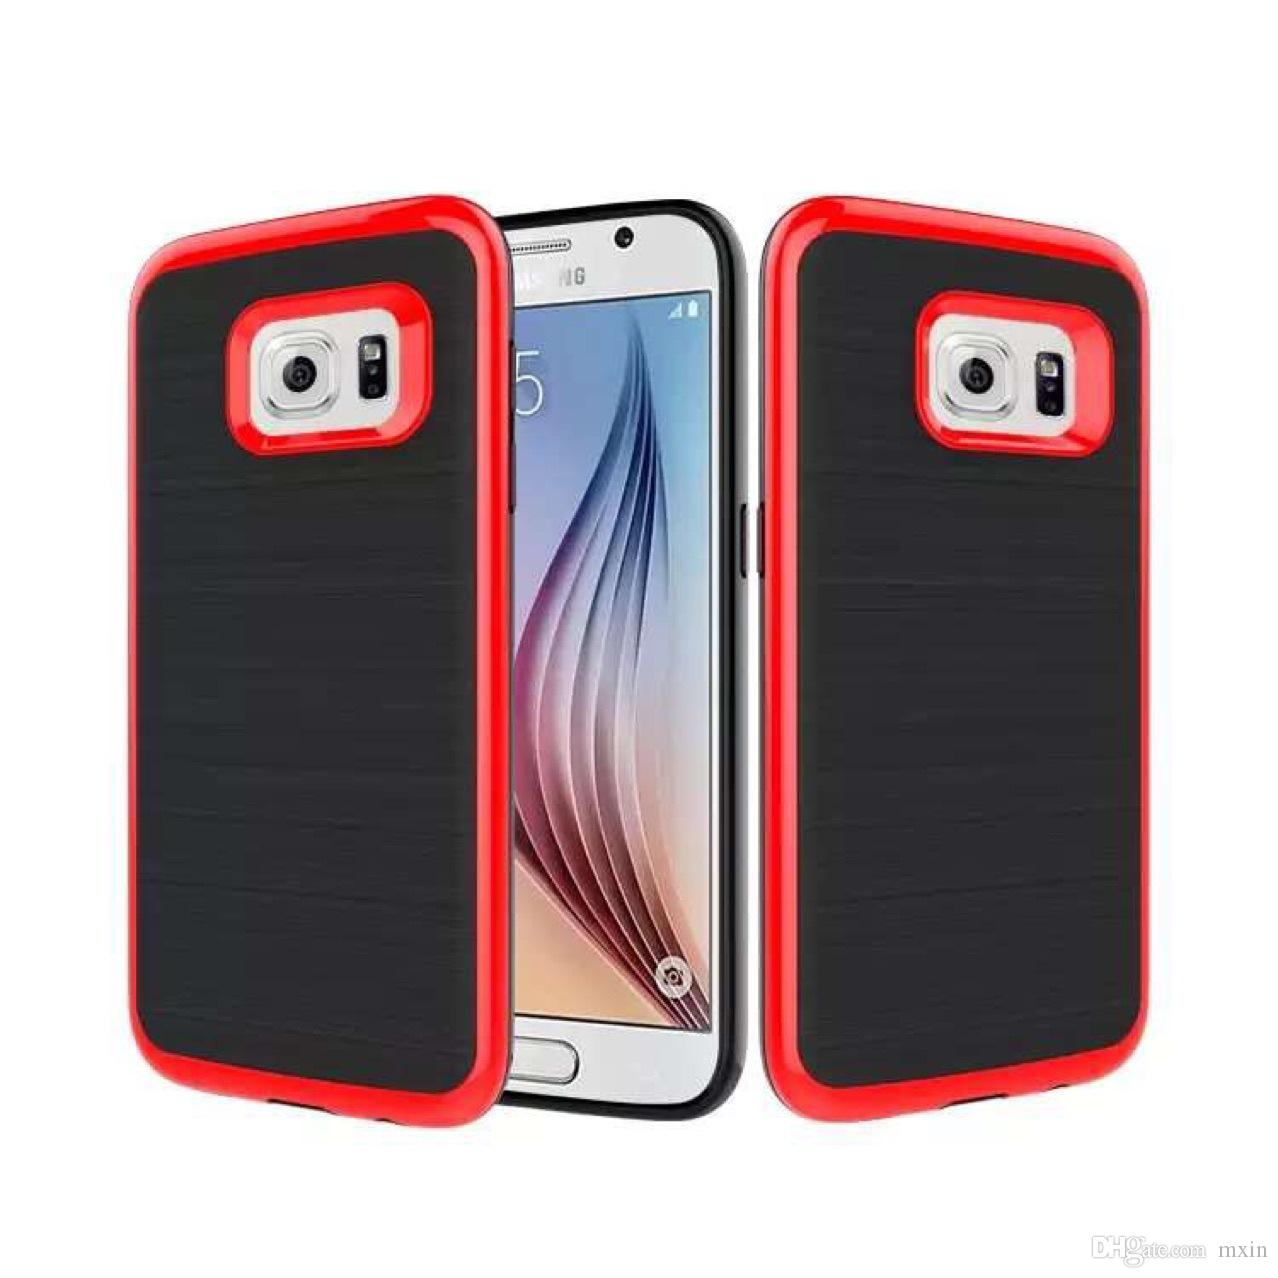 Motomo Brushed 3 In 1 Tpu Pc Hybrid Slim Armor Case For Samsung Metal Bumper With Cover Galaxy A5 2017 A520 On5 On7 J2 J5 J7 Prime J3 A3 A7 Zte Zmax Z981 Online 148 Piece On